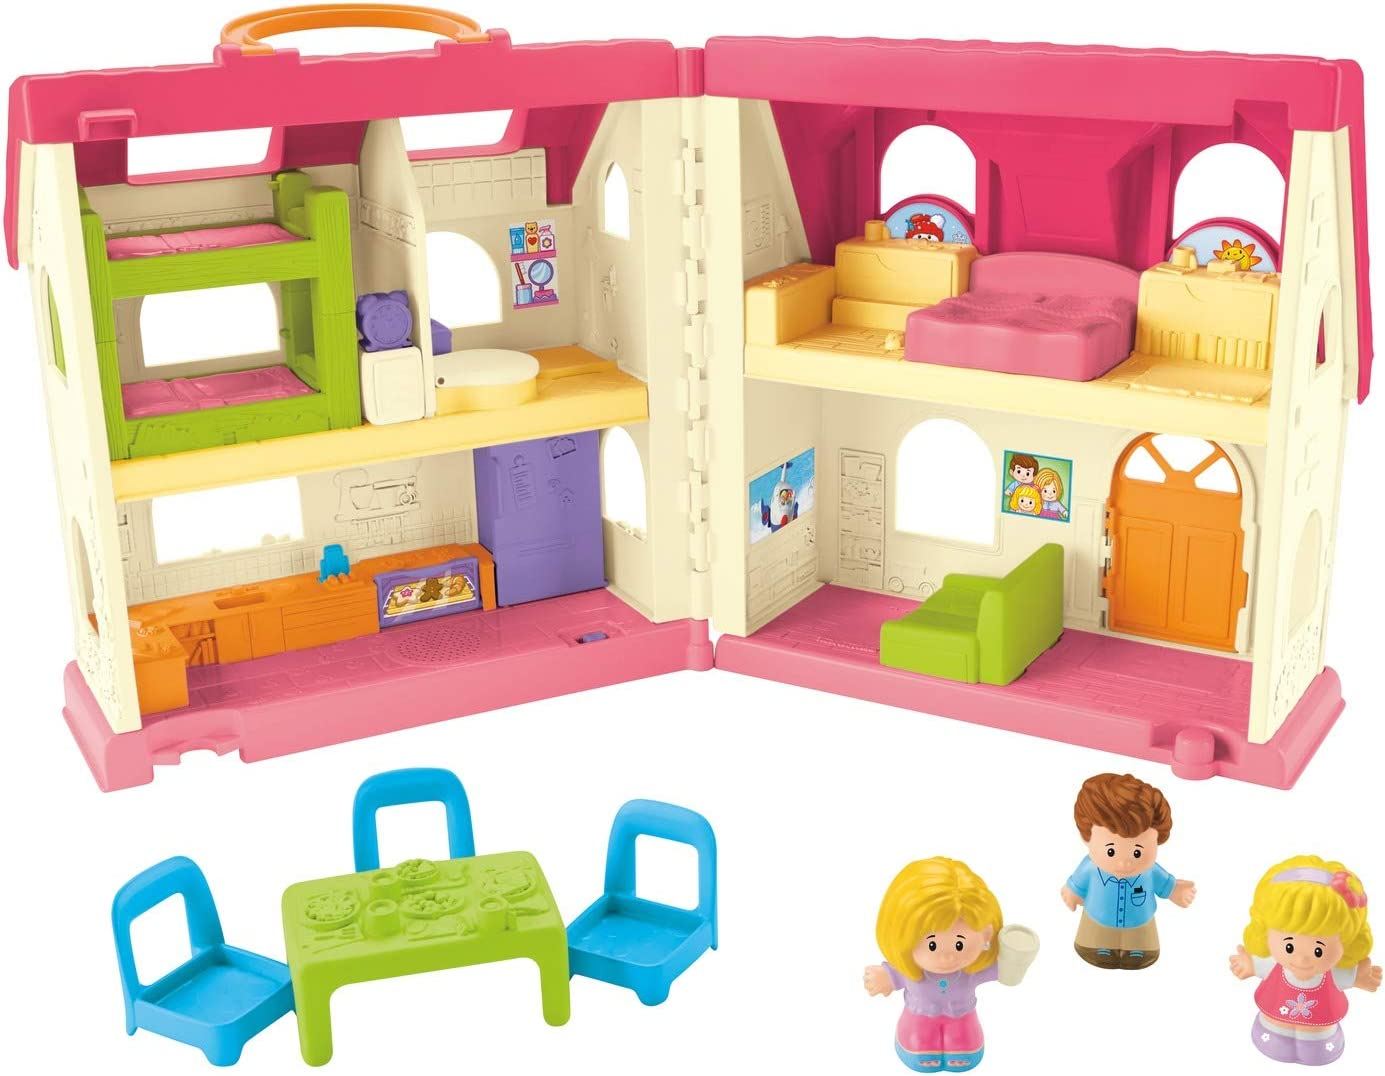 9 Best Fisher Price Dollhouse Reviews of 2021 11